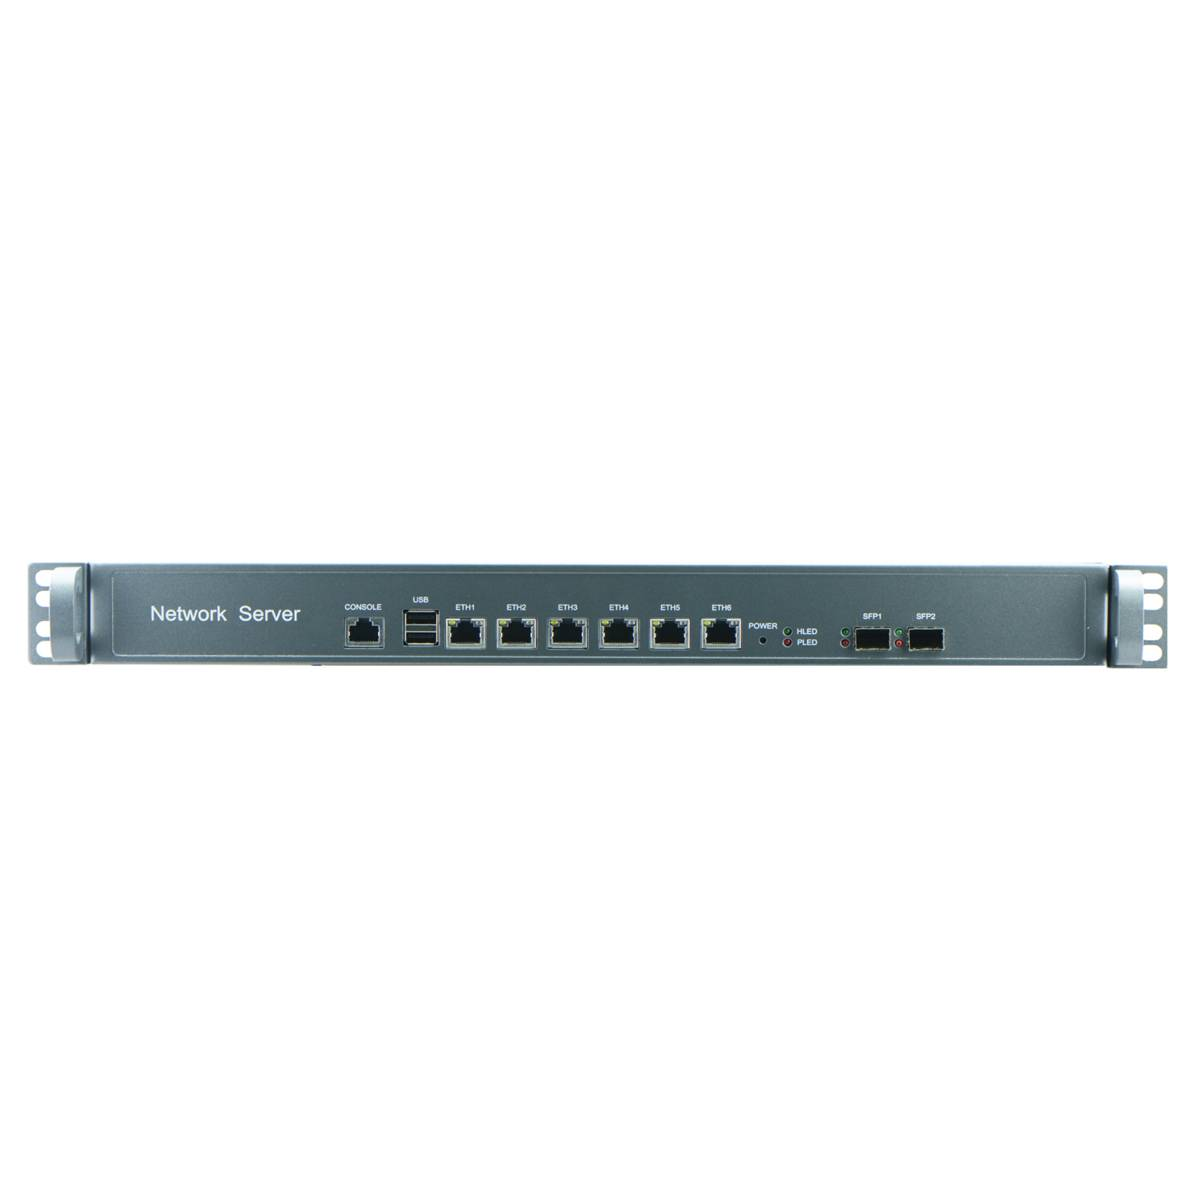 Intel H67 1U Industrial Rackmount Barebone for Network Security with 6Nic, 2SFP Option